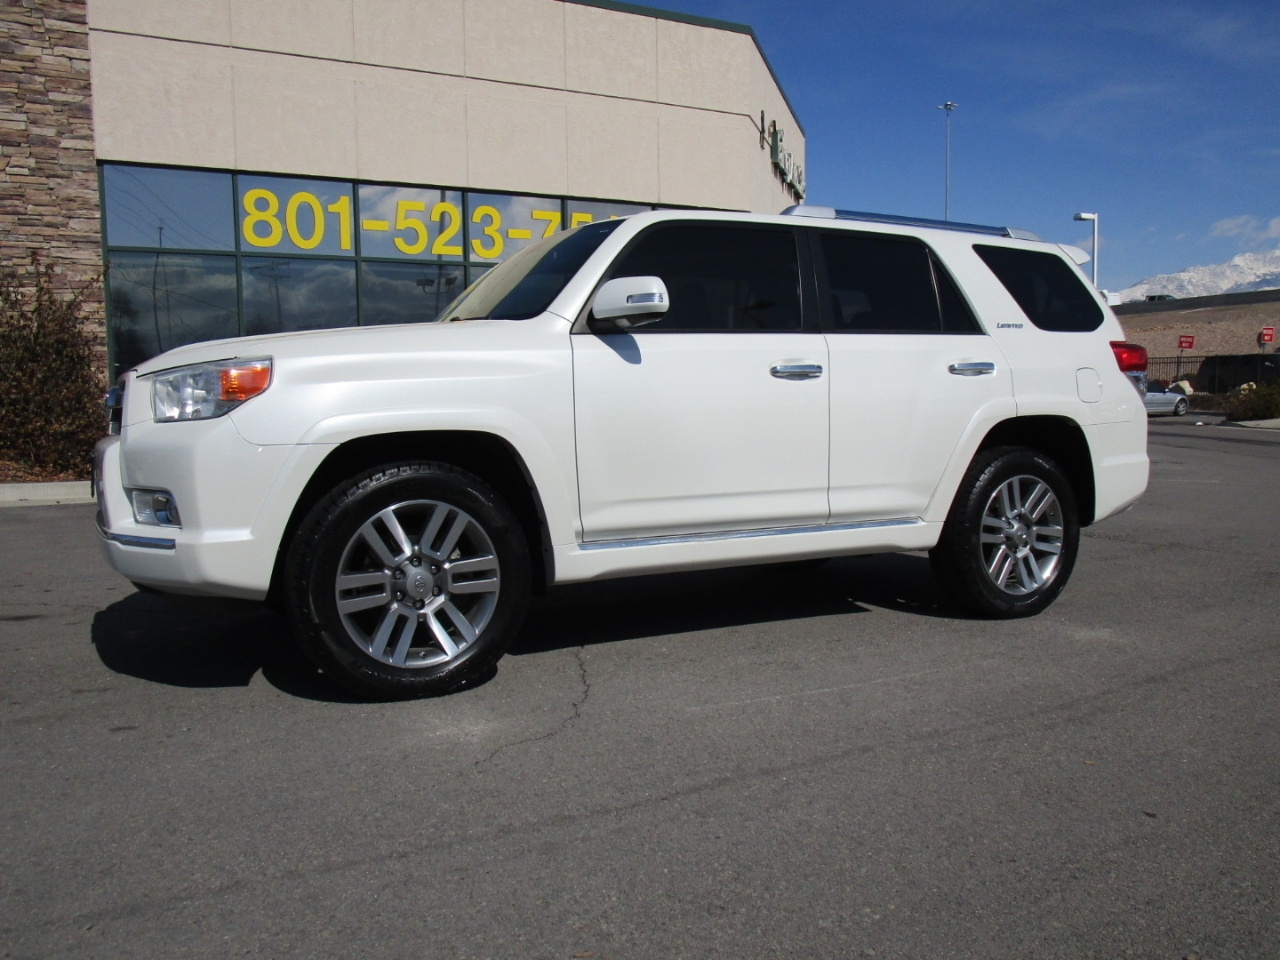 2013 Toyota 4Runner 4dr Limited V6 Auto (Natl)